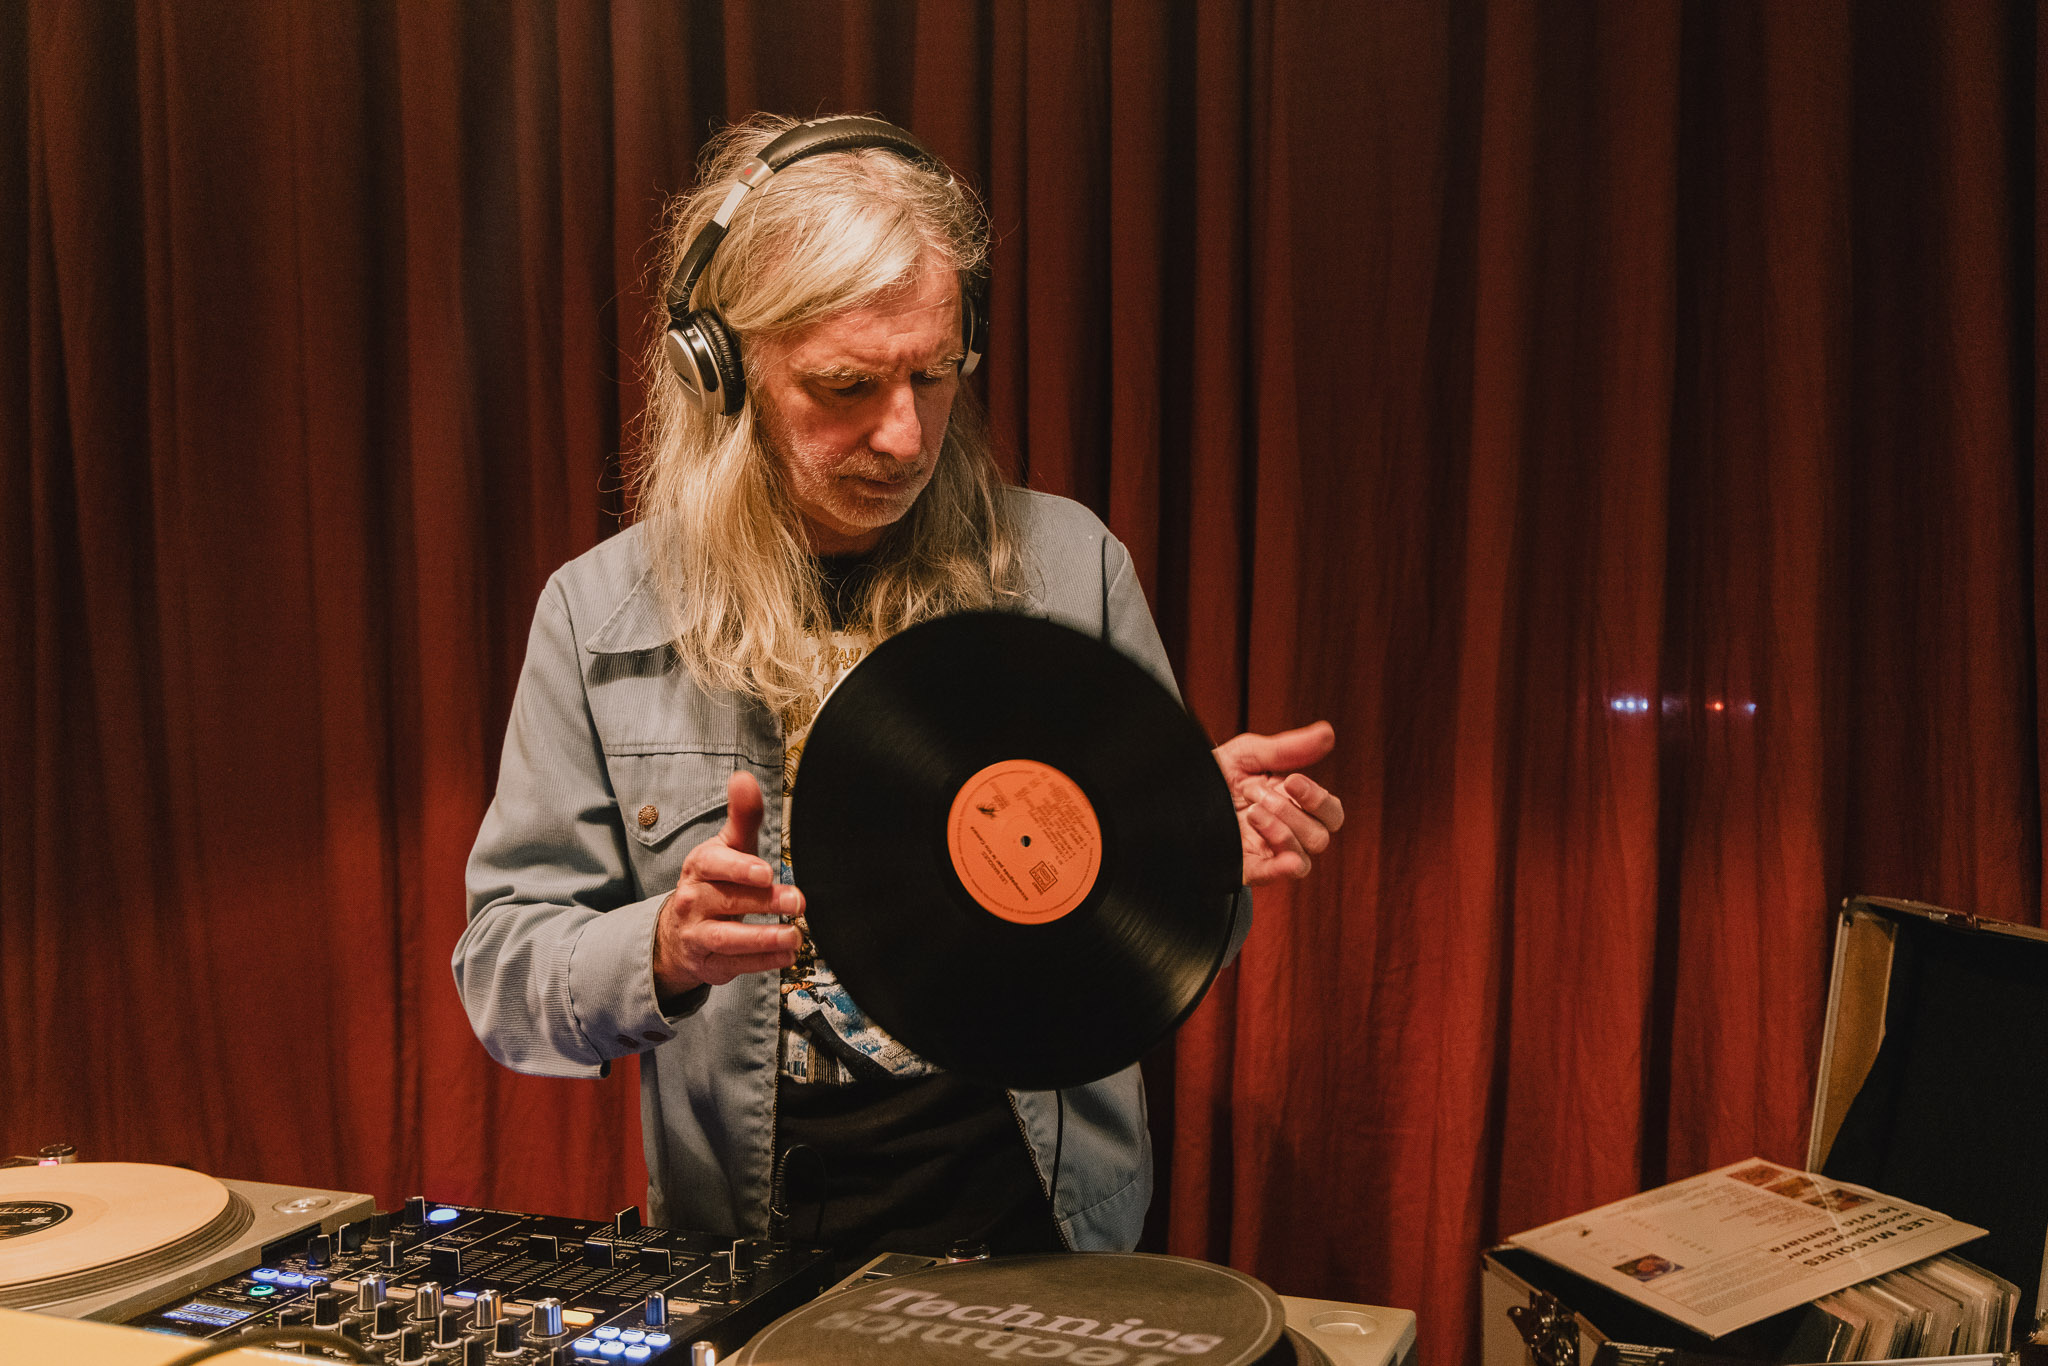 image of a person with long white hair holding a vinyl record while djing